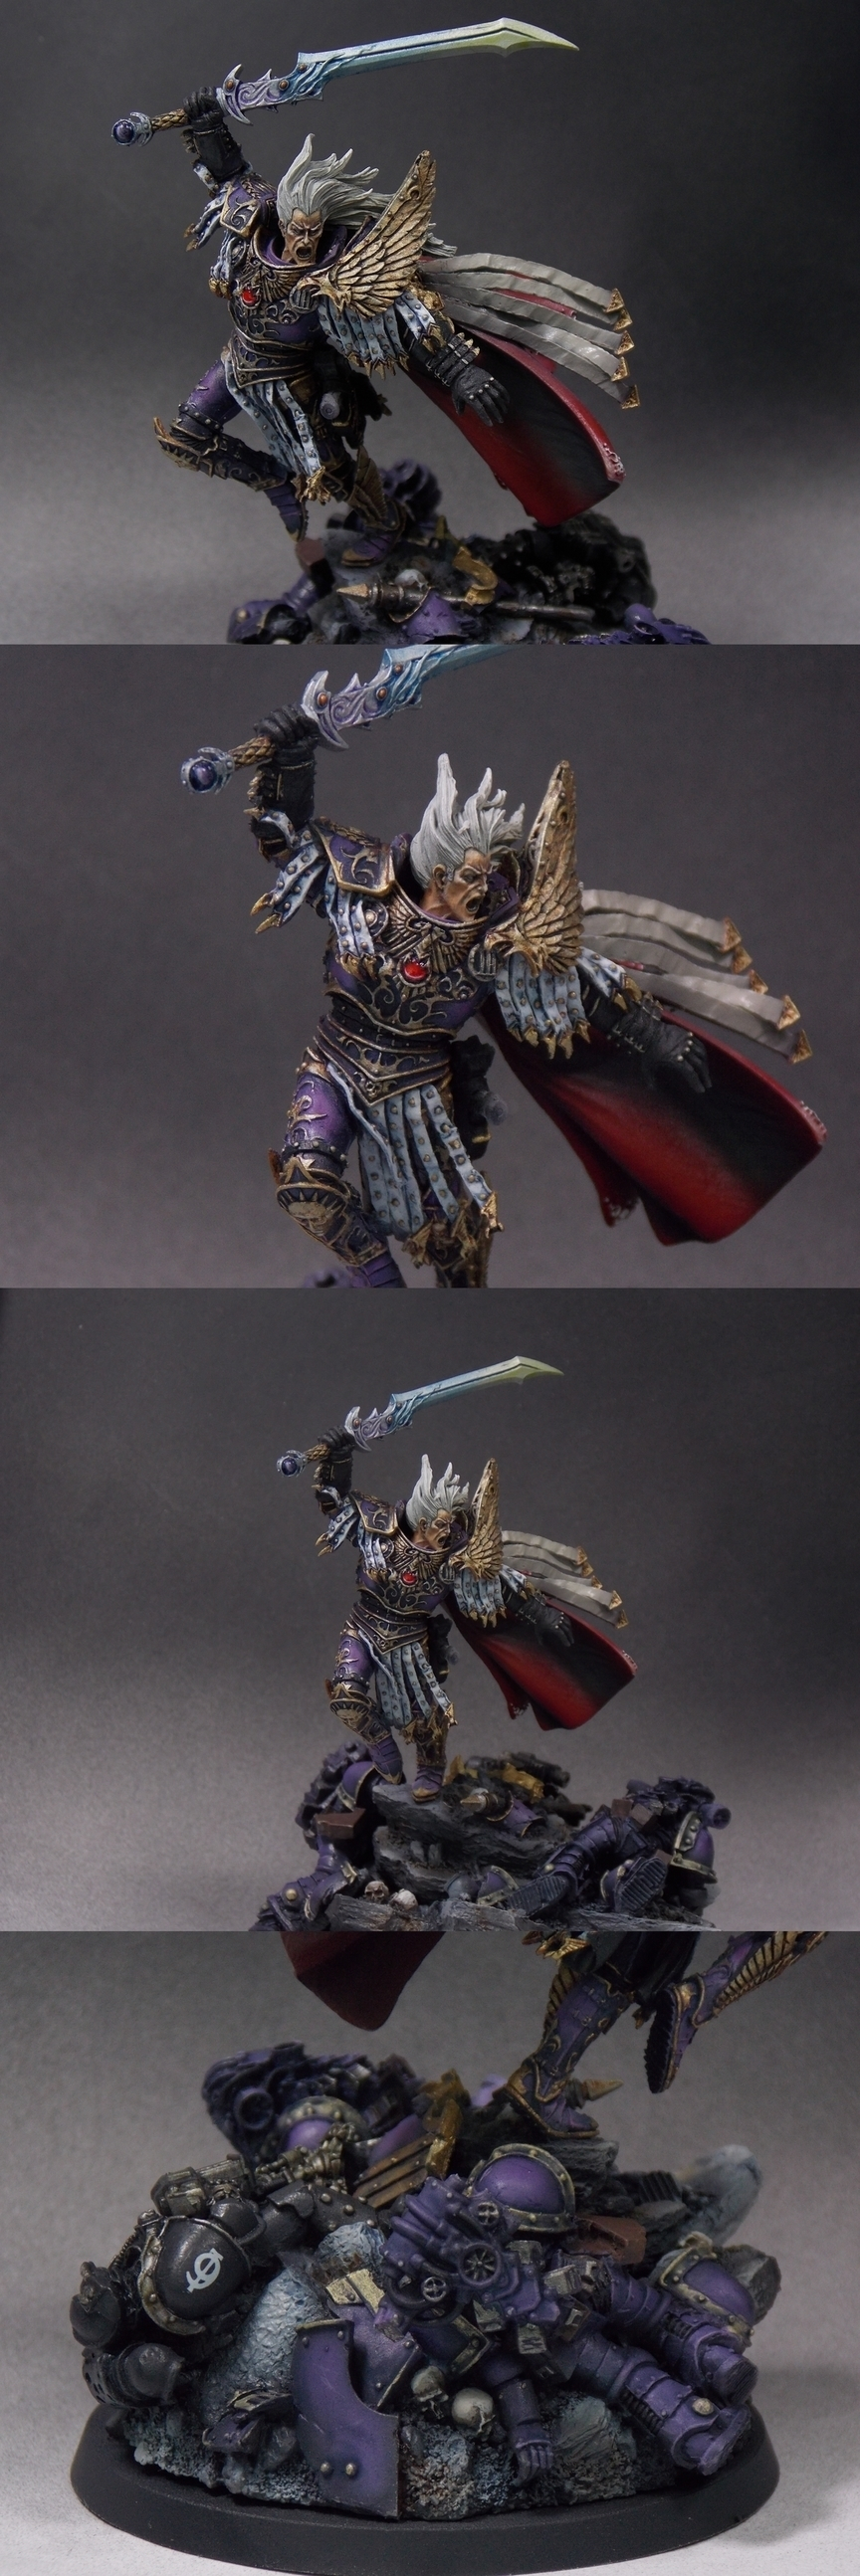 Fulgrim Primarch of the Emperors Children